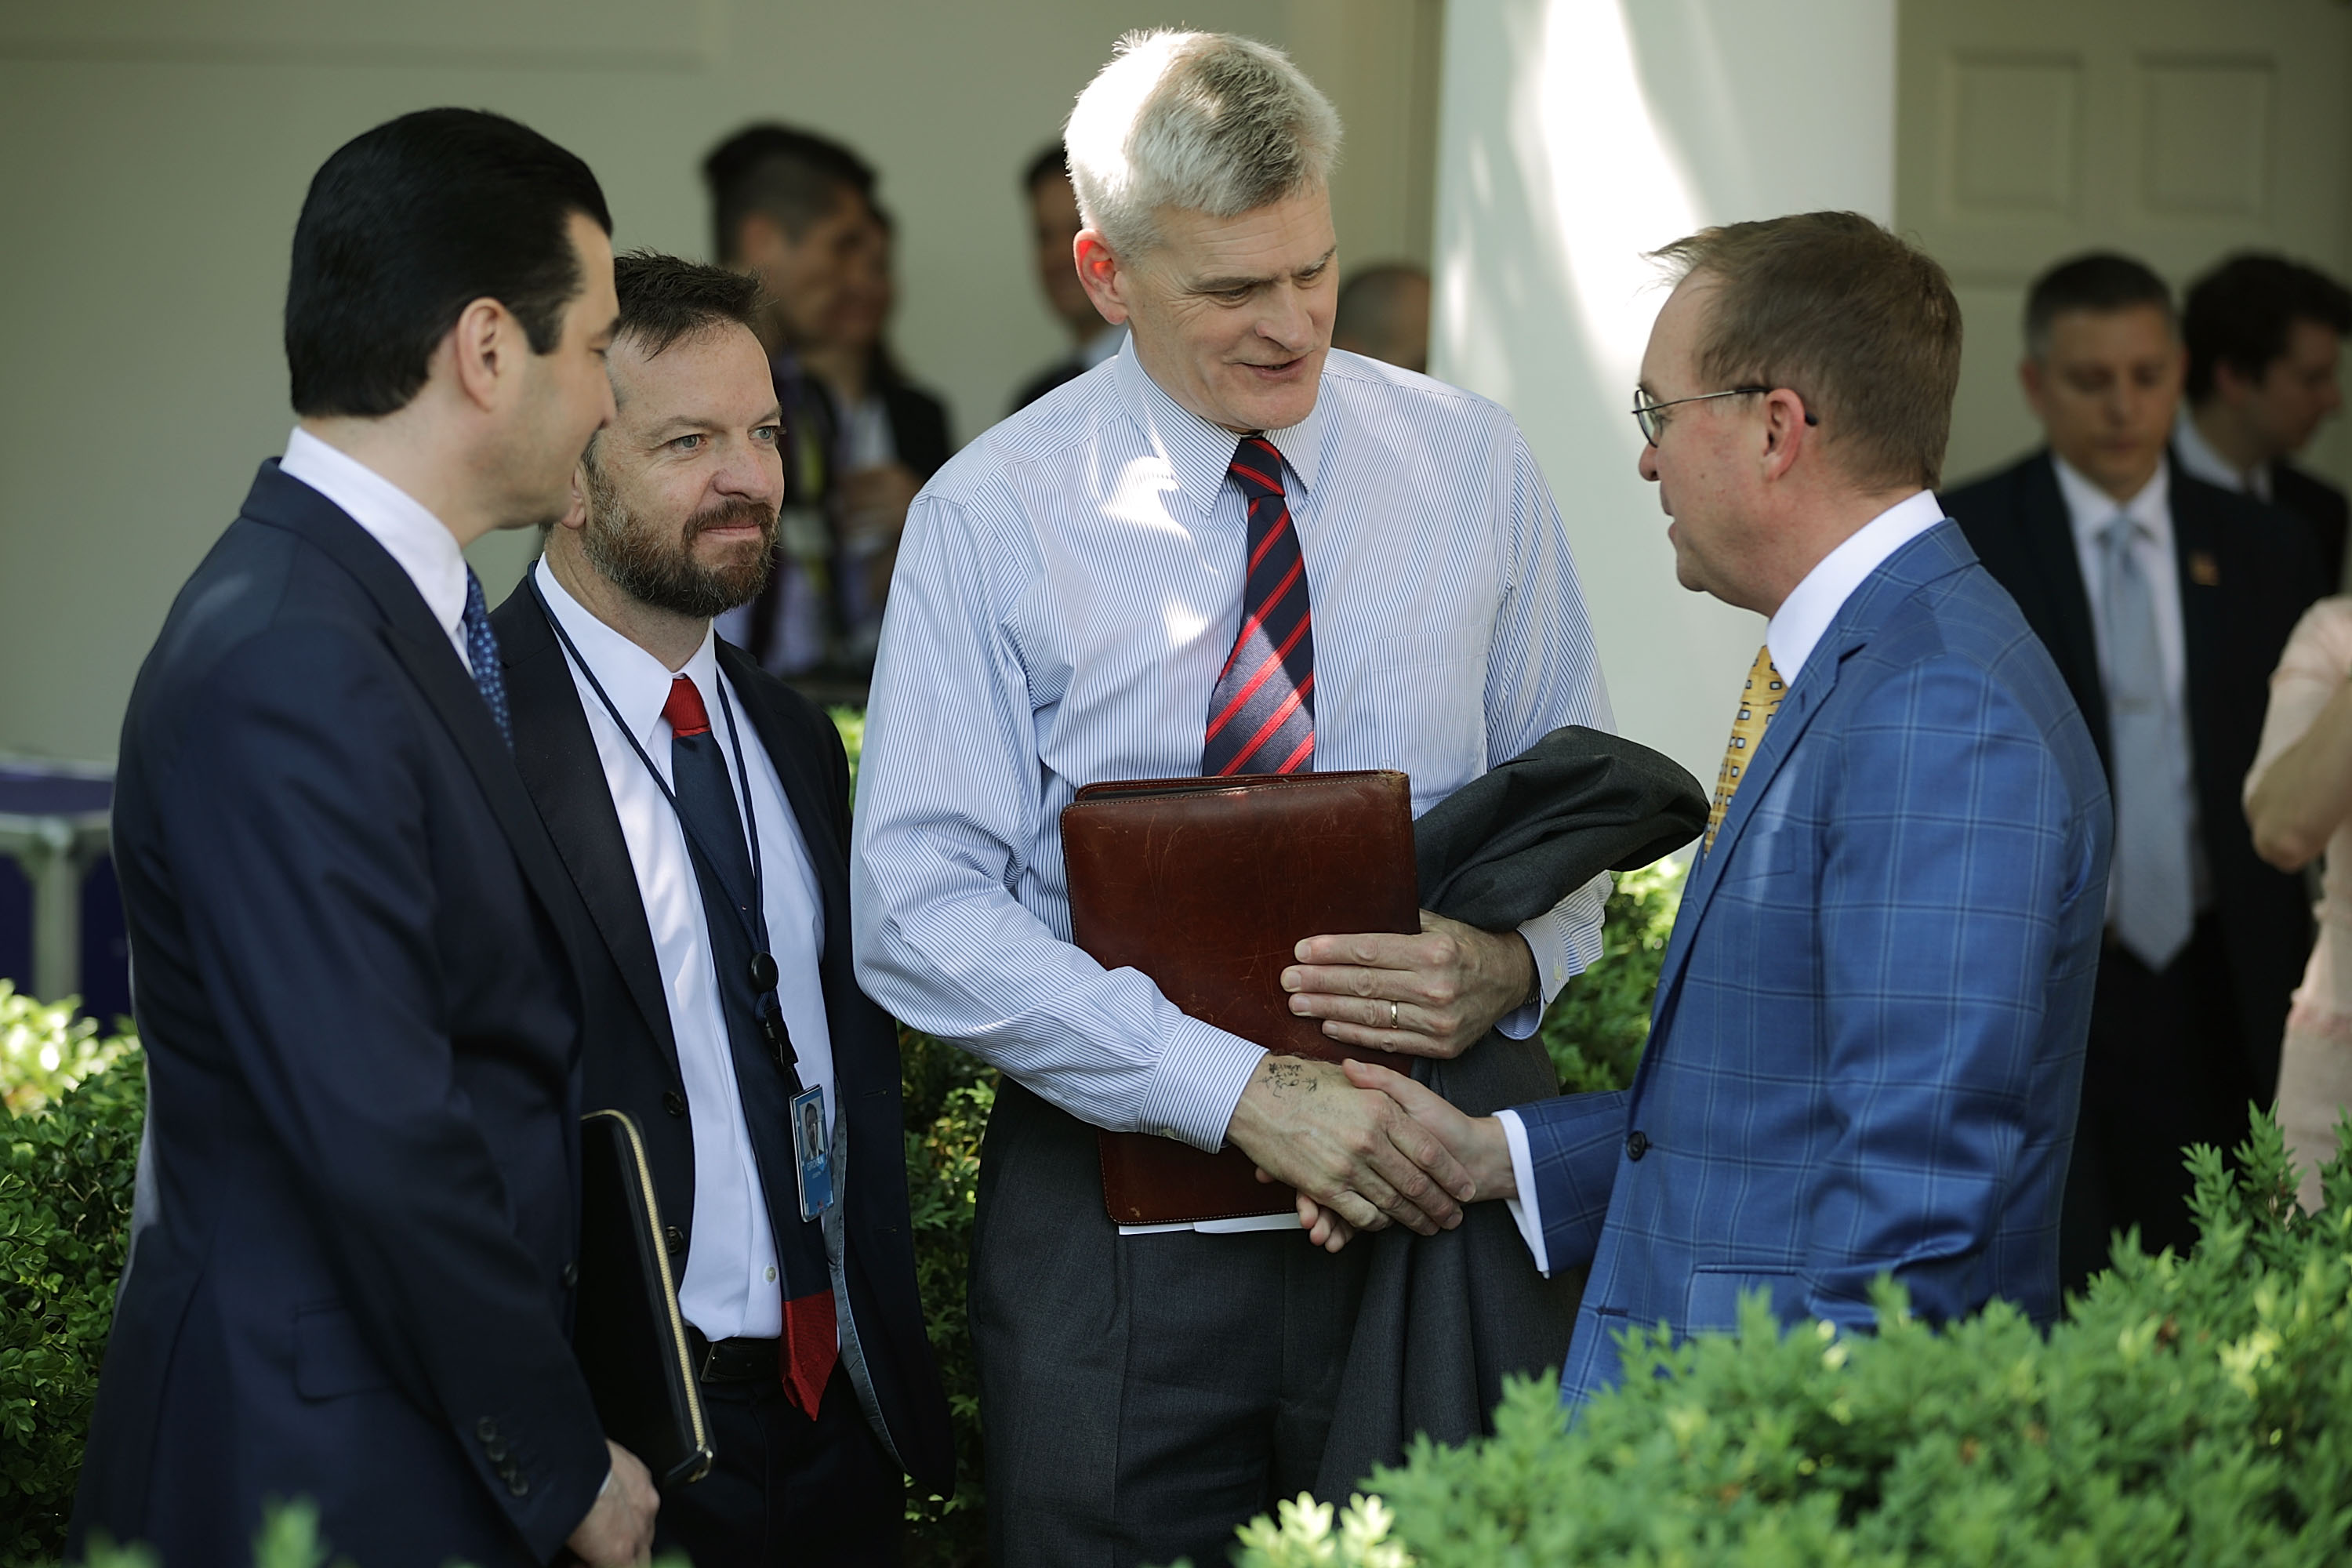 U.S. Food and Drug Administration Commissioner Scott Gottleib (L), Sen. Bill Cassidy (C) and Office of Management and Budget Director Mick Mulvaney (R) greet one another before an announcement by President Donald Trump about drug prices in the Rose Garden at the White House May 11, 2018 in Washington, DC. (Photo by Chip Somodevilla/Getty Images)